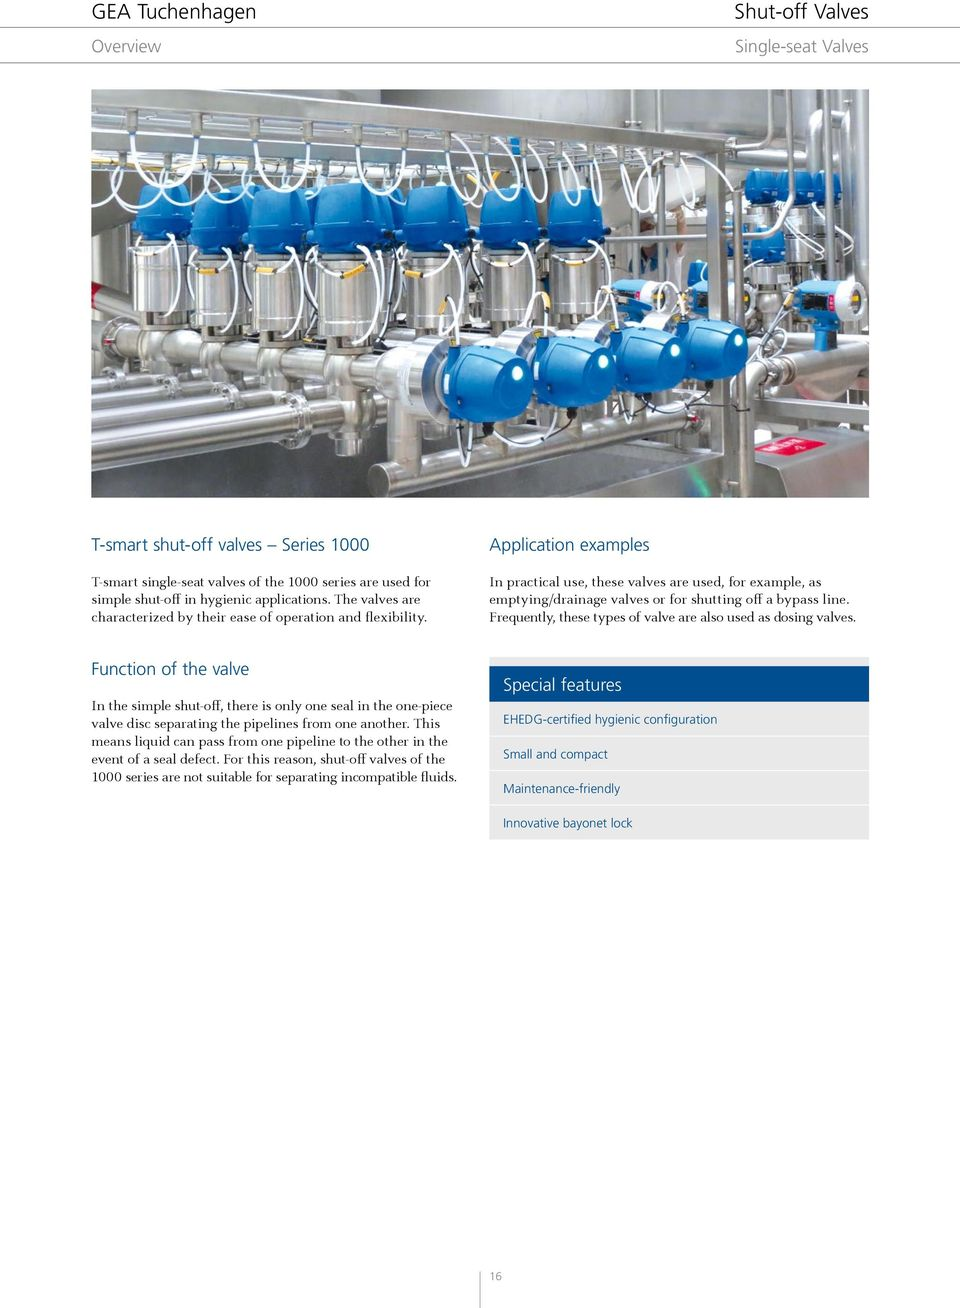 medium resolution of application examples in practical use these valves are used for example as emptying